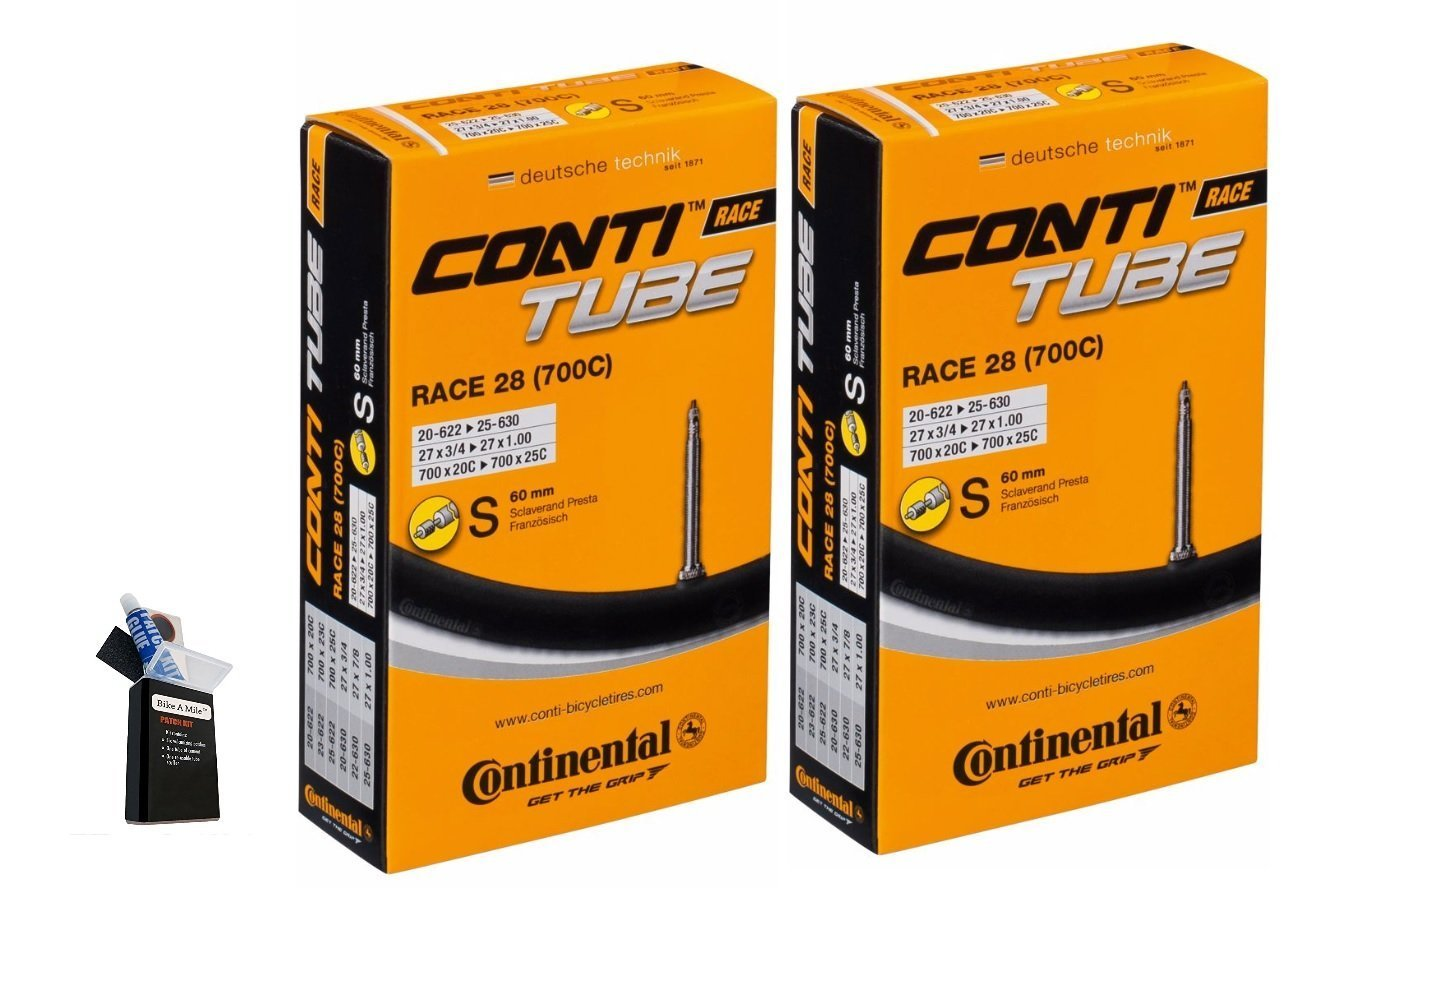 Continental 42MM OR 60MM Presta Valve Bicycle Tube Pack of 2 (2 Pack 42MM, 29 x 1.75-2.5cc) by Bike A Mile